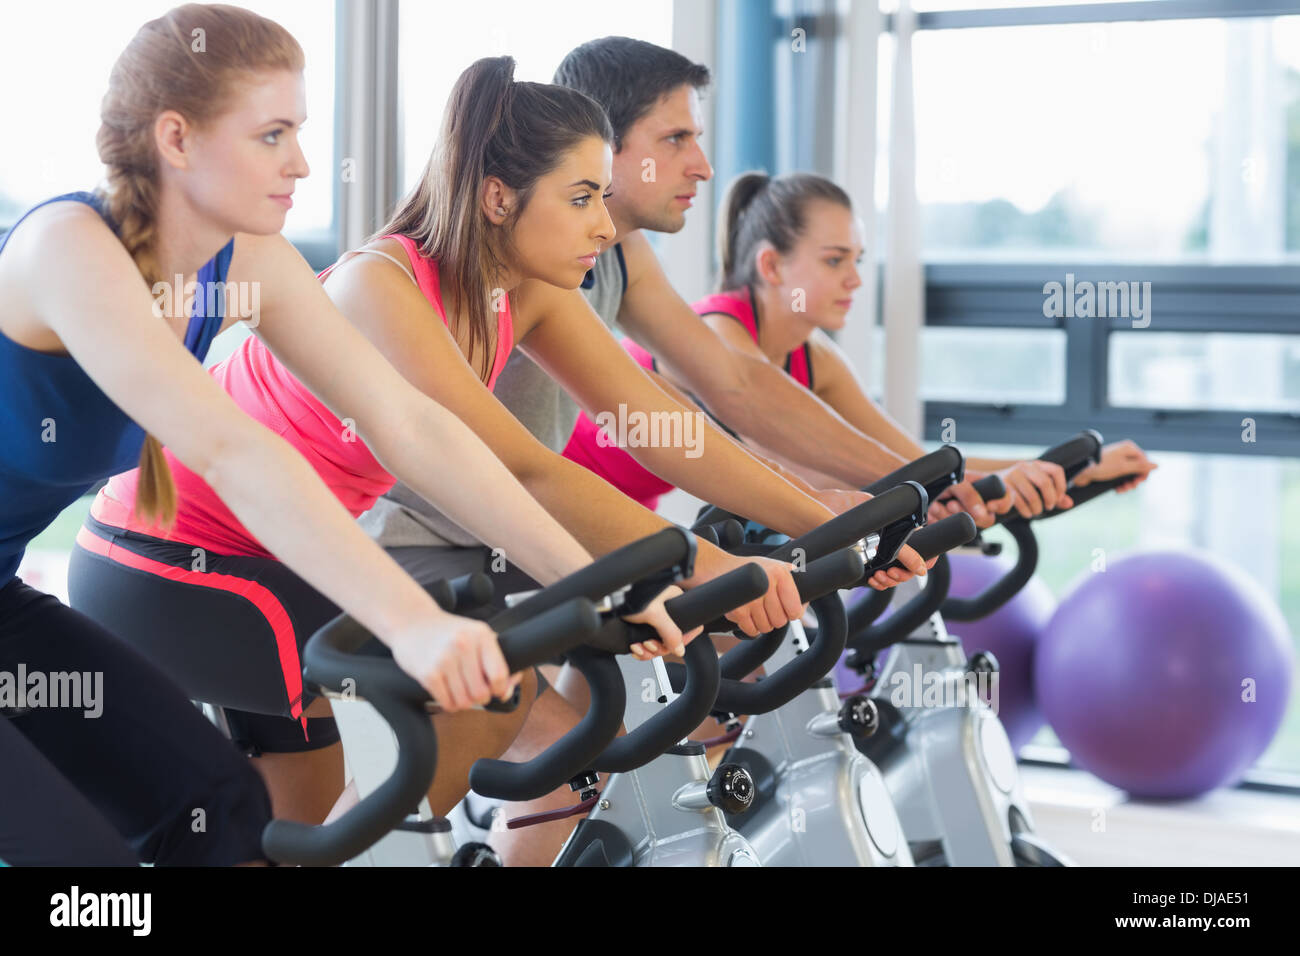 Quatre personnes working out at spinning class Photo Stock